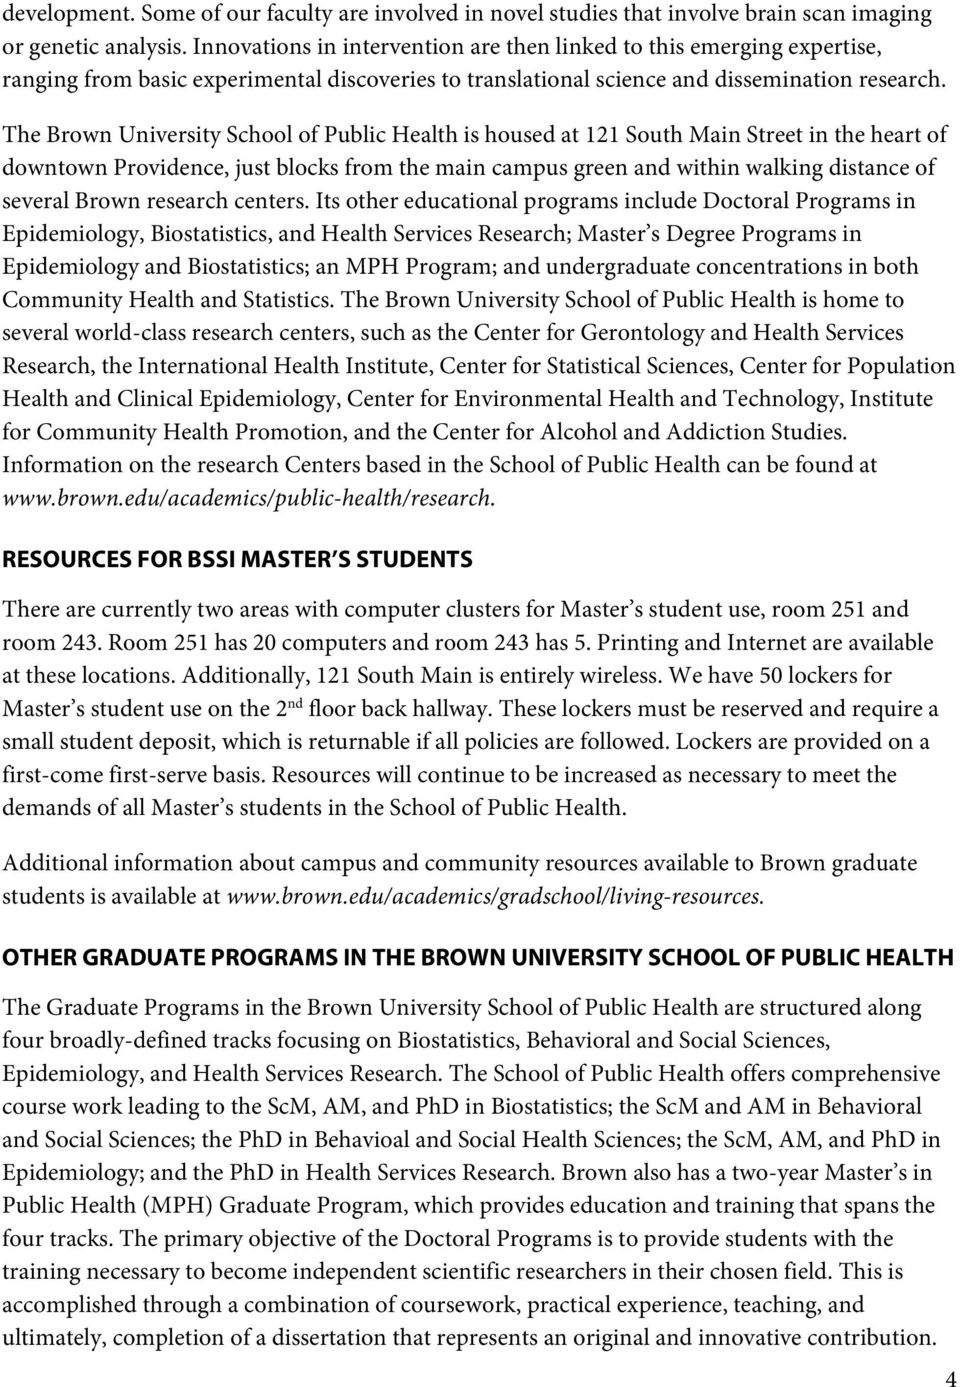 The Brown University School of Public Health is housed at 121 South Main Street in the heart of downtown Providence, just blocks from the main campus green and within walking distance of several